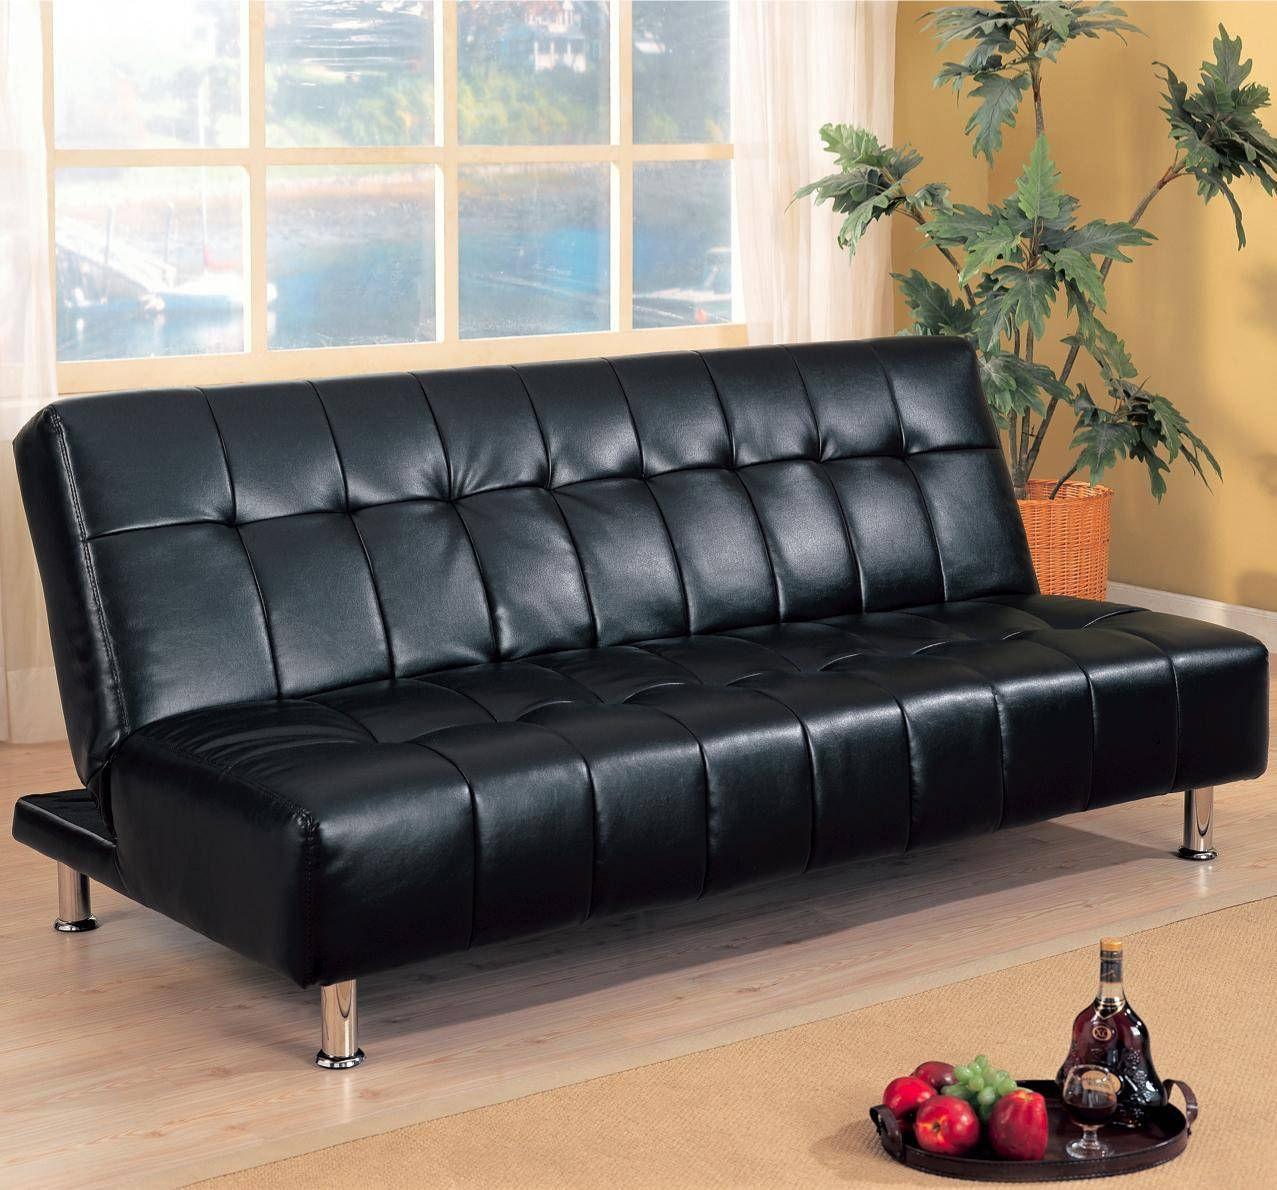 Furniture: Fabulous Faux Leather Futon For Living Room Decor for Leather Fouton Sofas (Image 5 of 15)